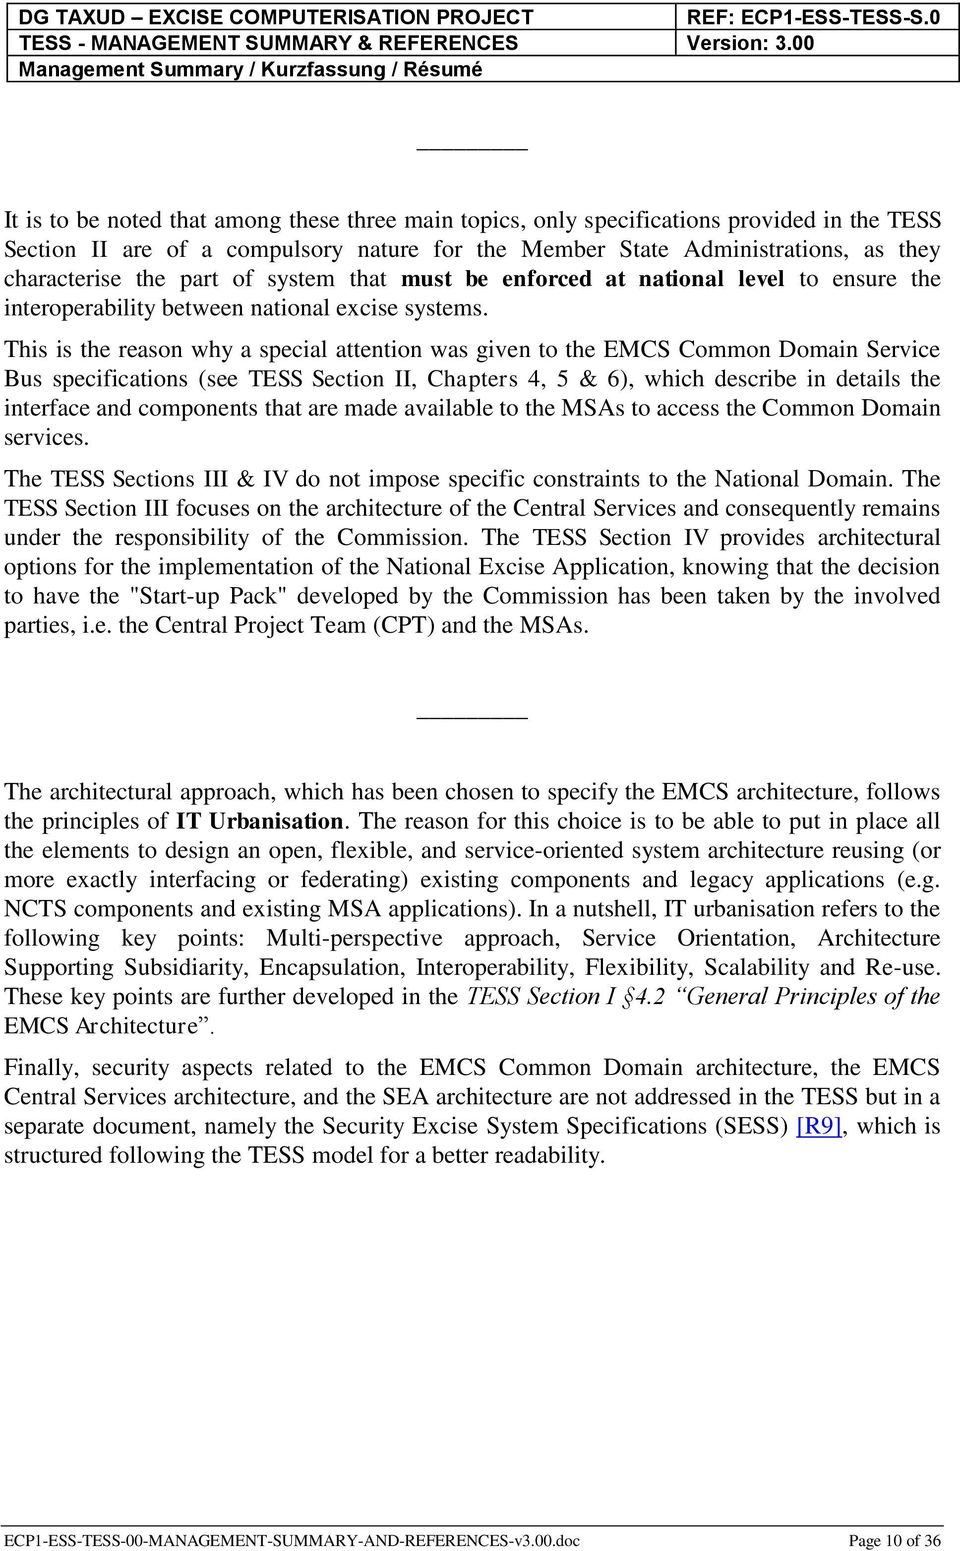 This is the reason why a special attention was given to the EMCS Common Domain Service Bus specifications (see TESS Section II, Chapters 4, 5 & 6), which describe in details the interface and